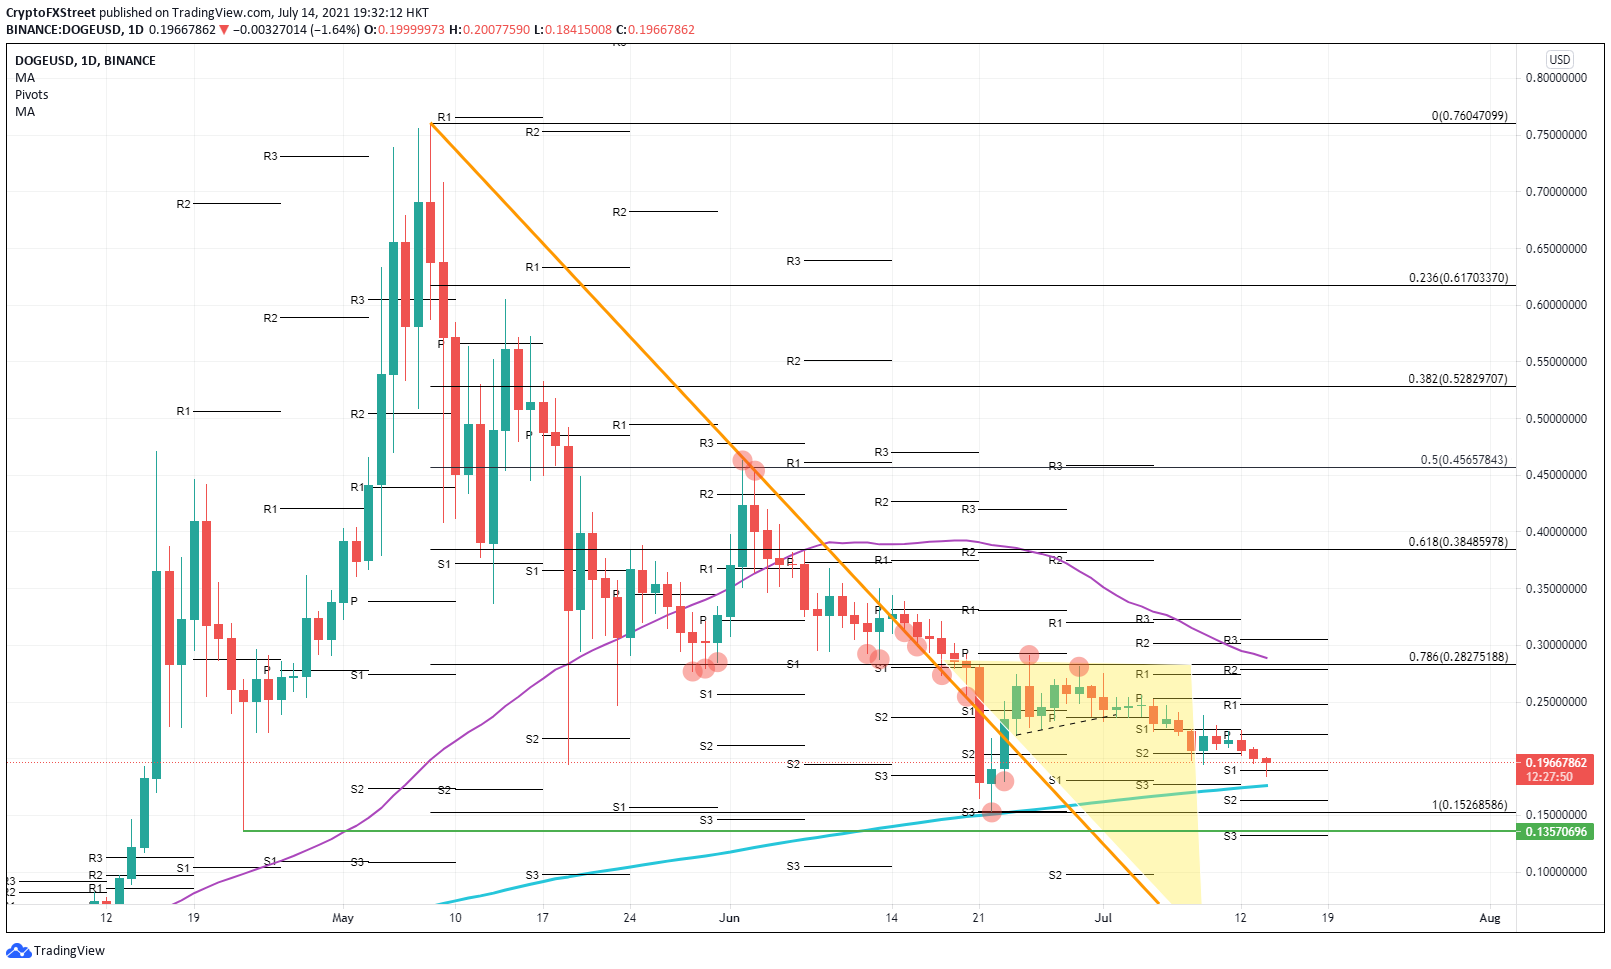 DOGE/USD daily chart